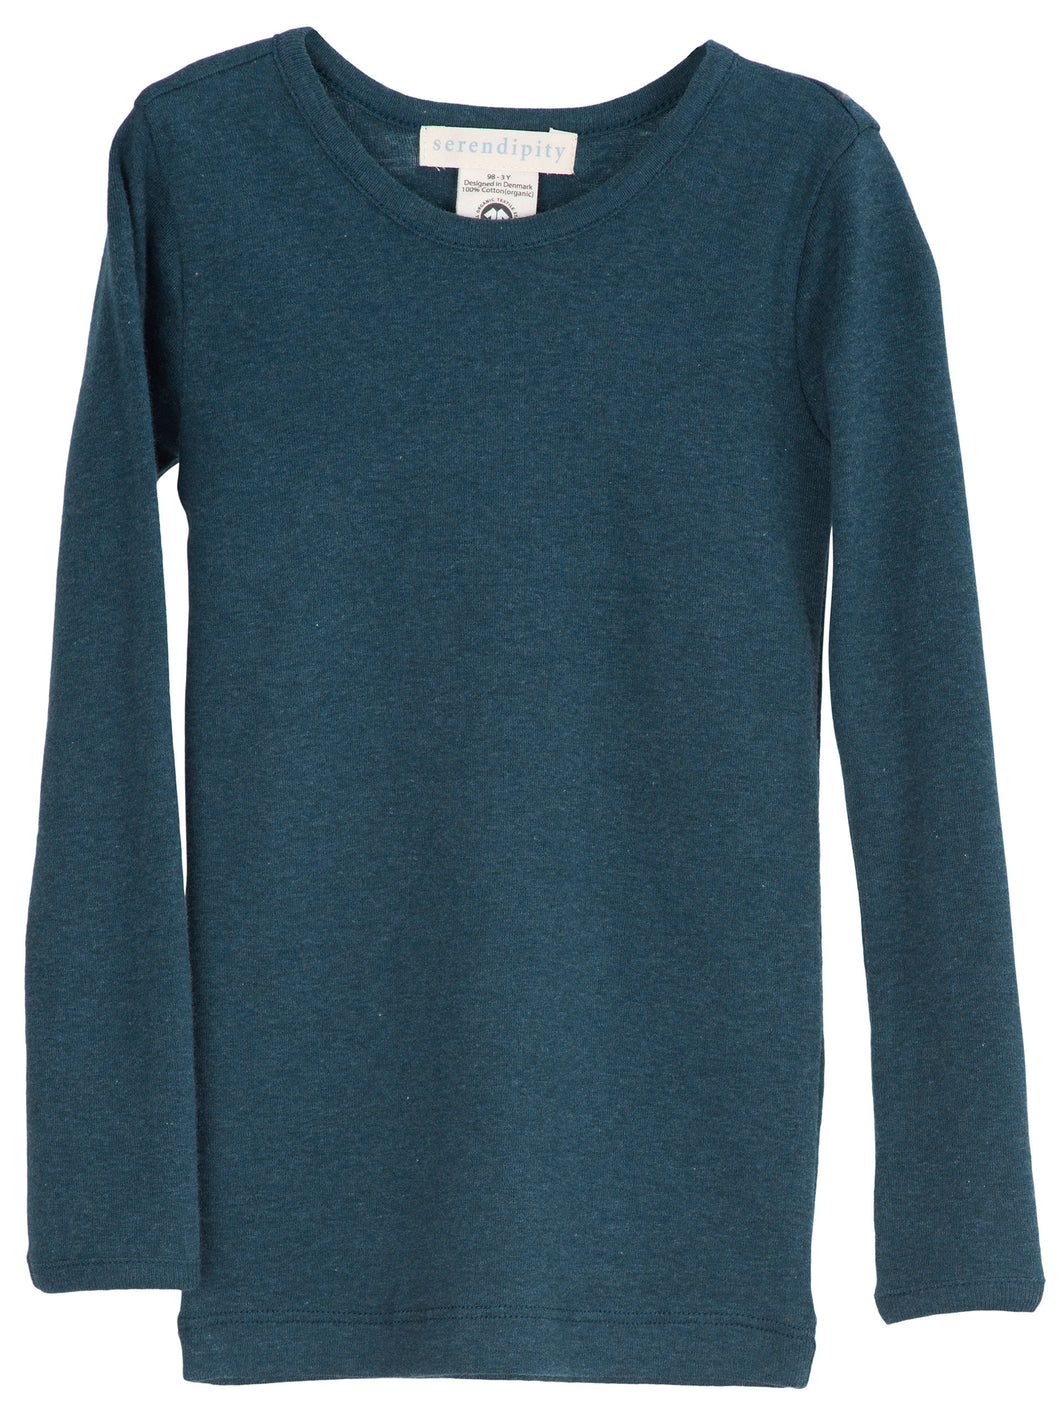 Long Sleeve Slim Tee - Serendipity Organics - 6 Colors